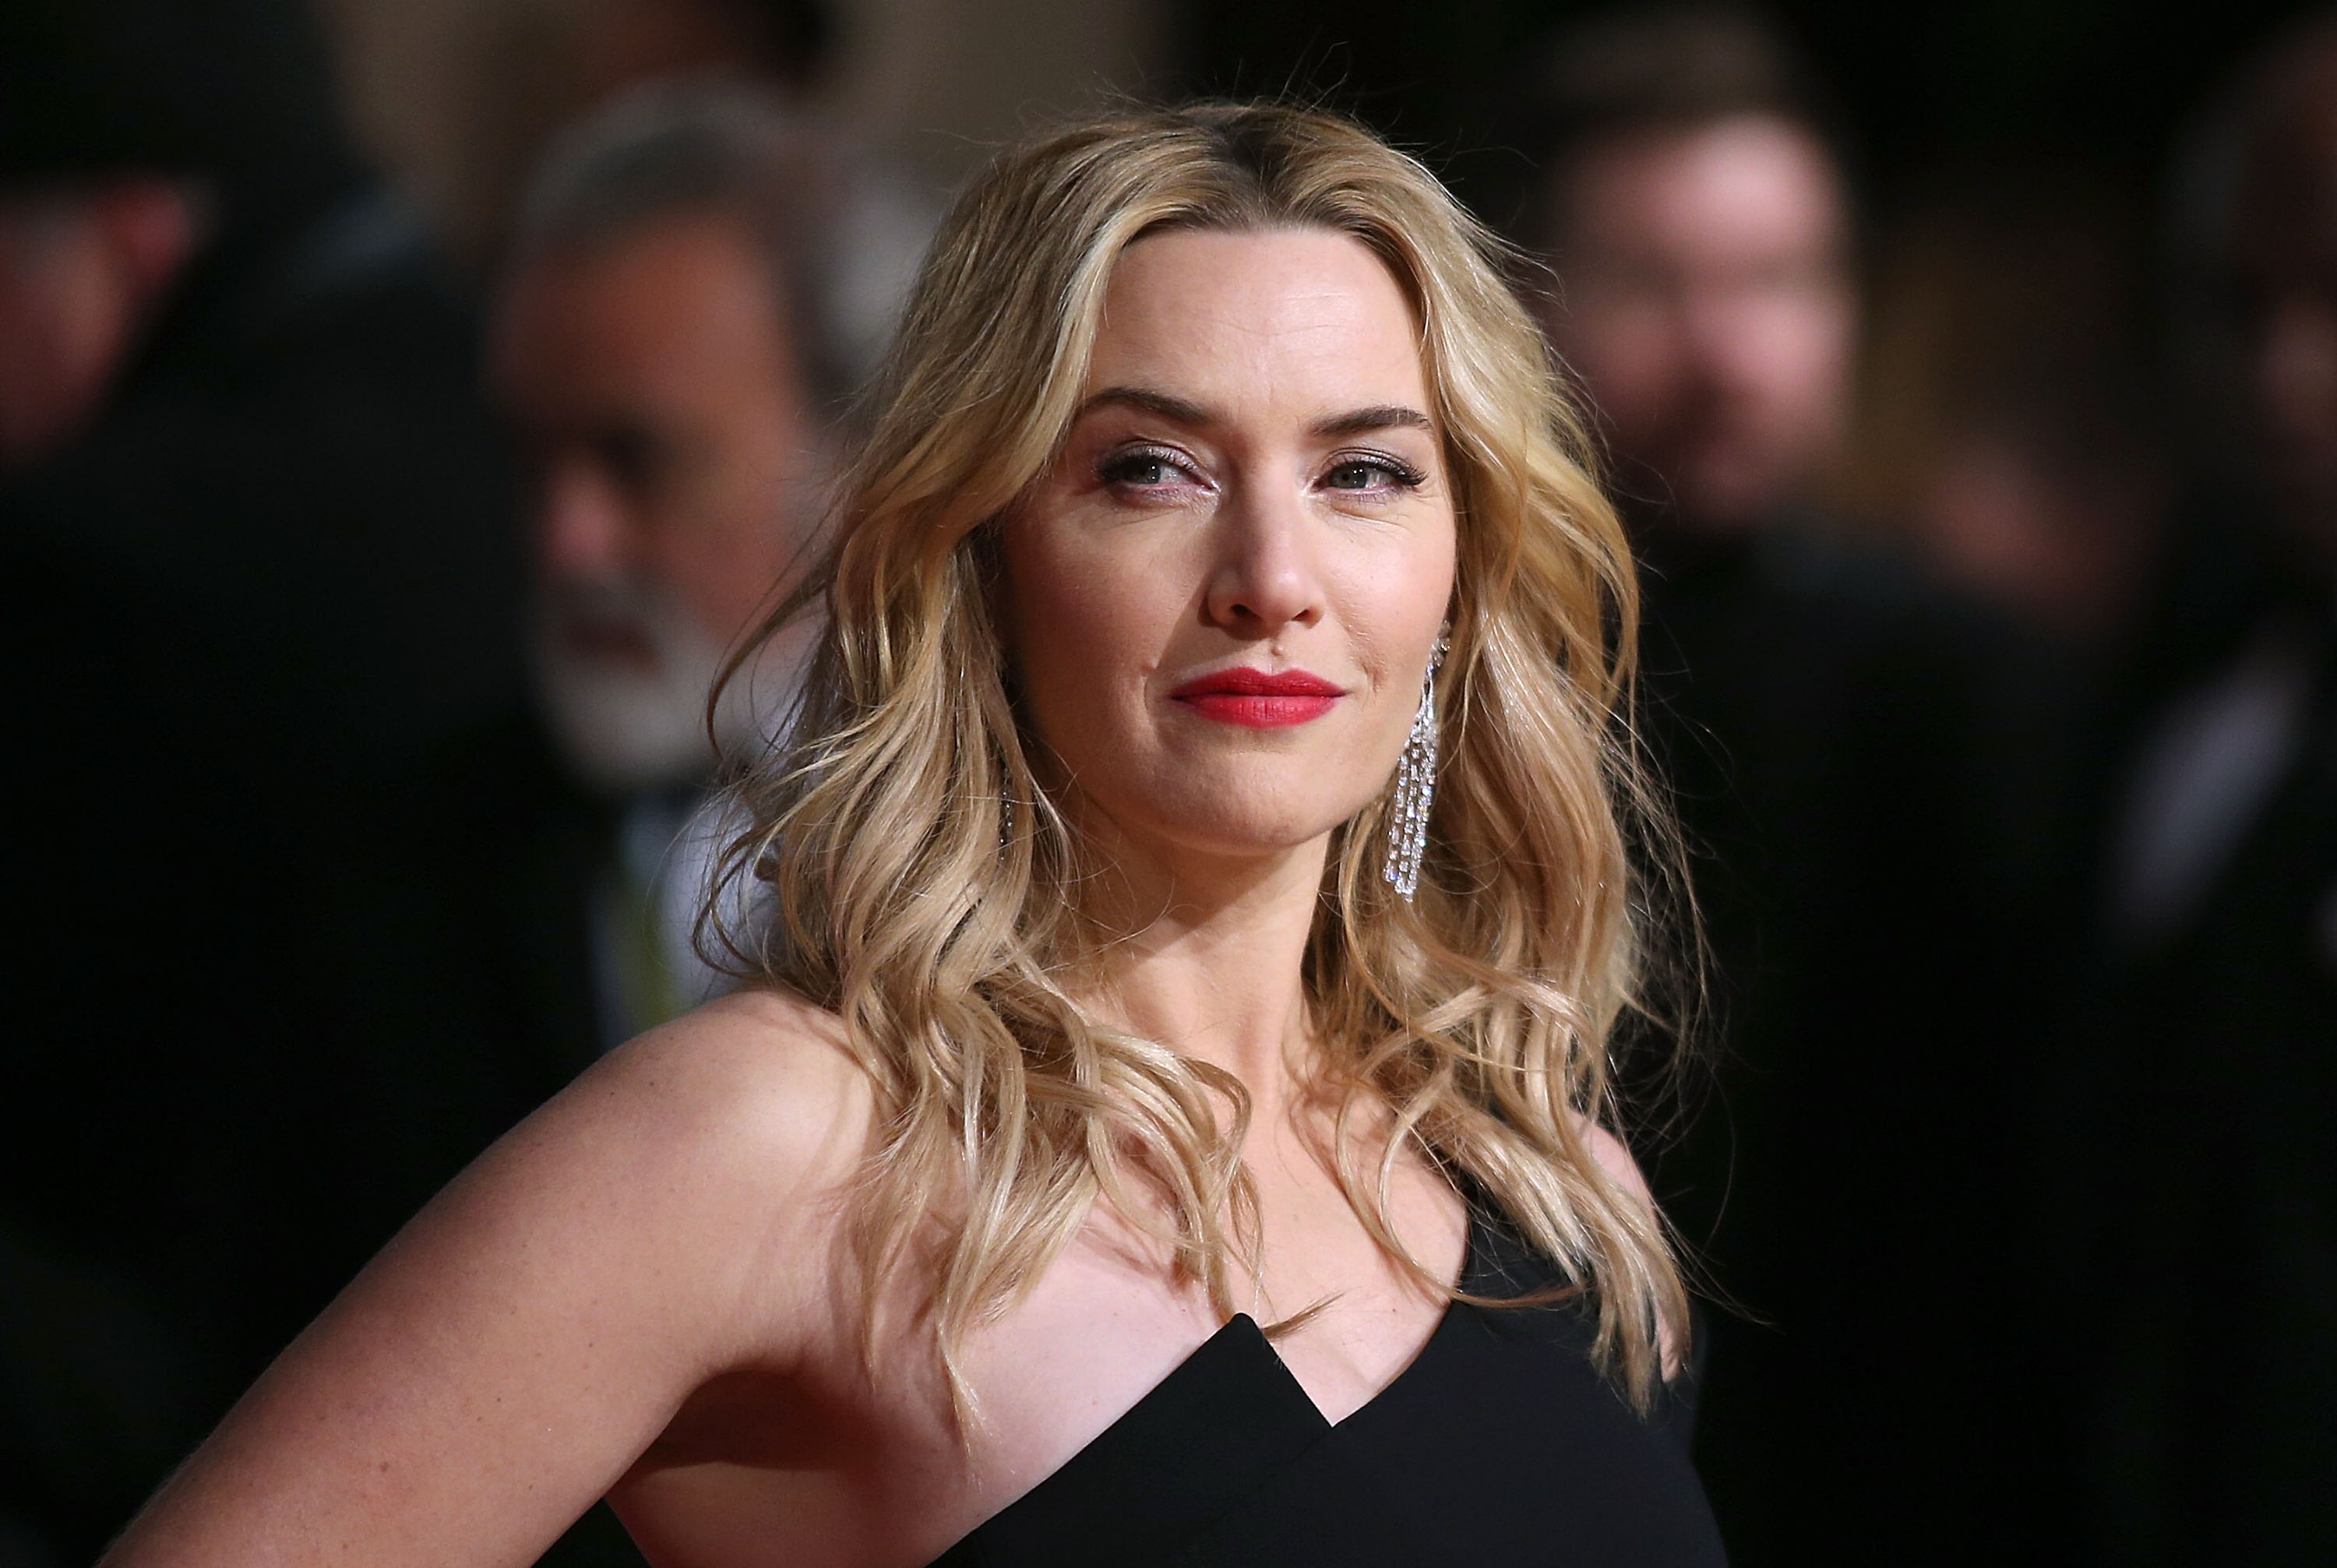 This Is How Kate Winslet Got Revenge On Her Bullies And Bravo To